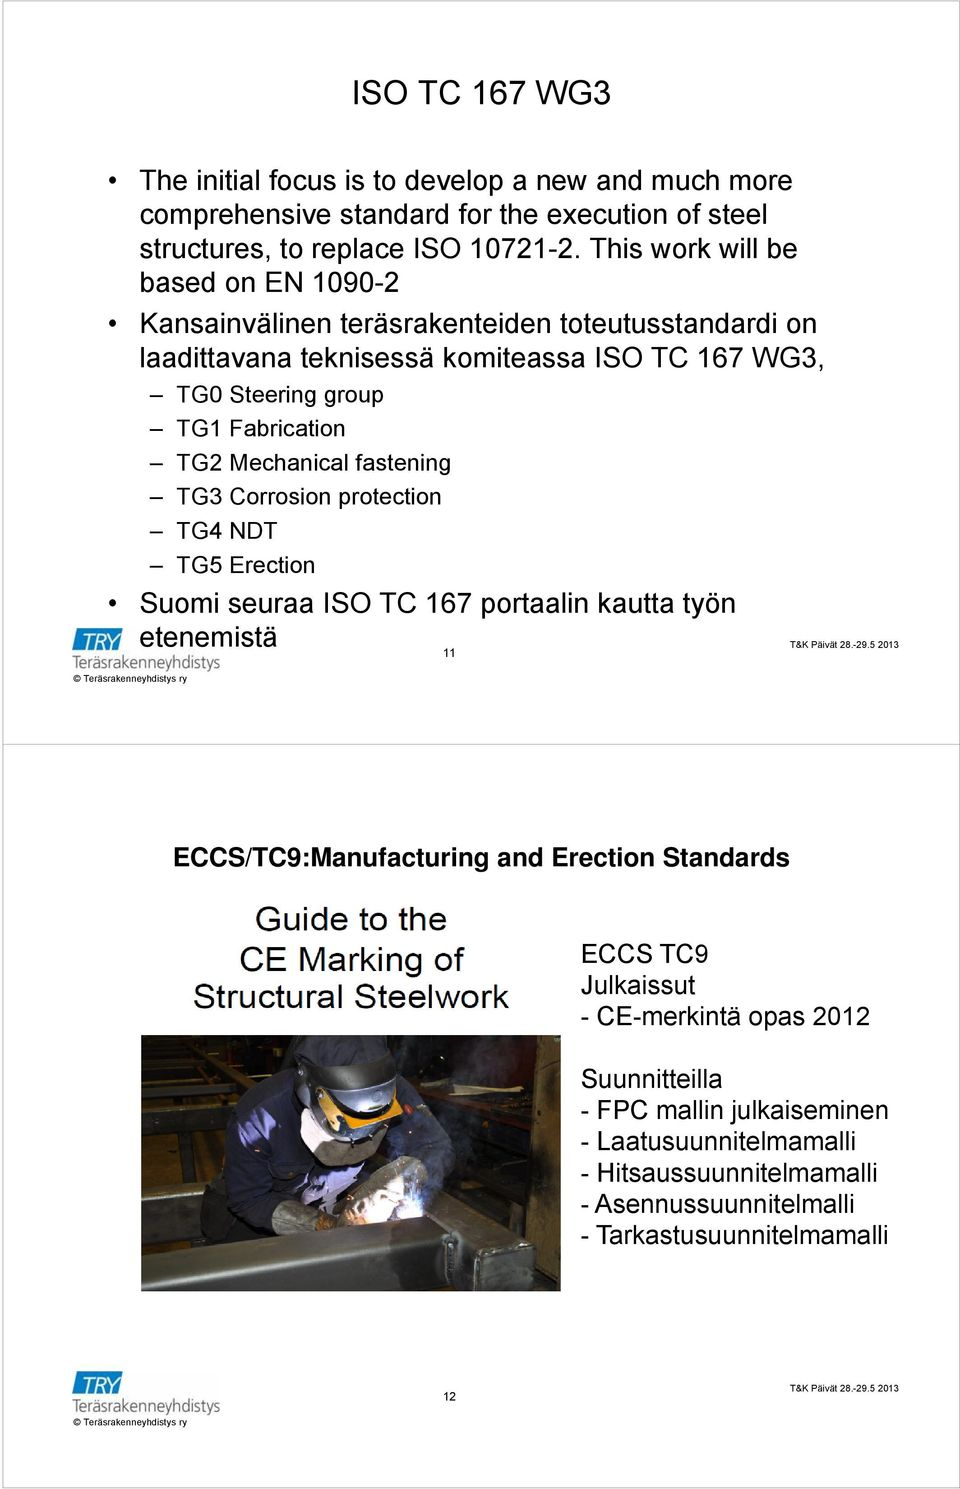 Fabrication TG2 Mechanical fastening TG3 Corrosion protection TG4 NDT TG5 Erection Suomi seuraa ISO TC 167 portaalin kautta työn etenemistä 11 ECCS/TC9:Manufacturing and